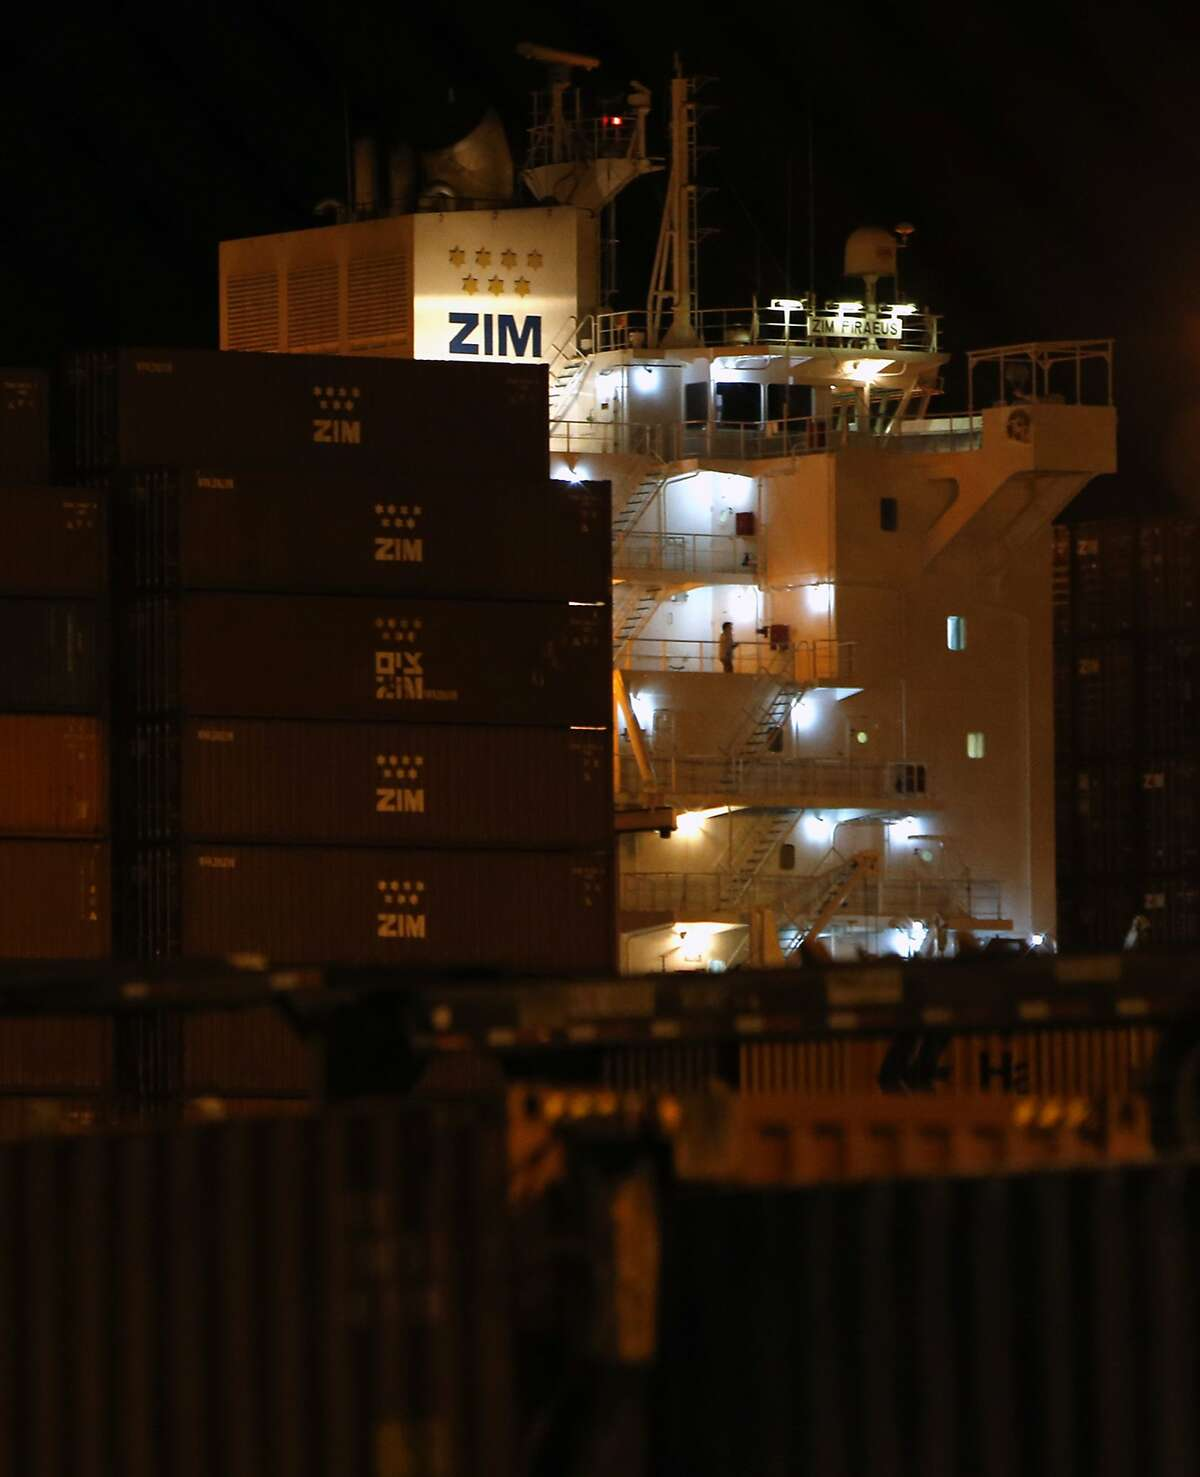 The Israeli owned ship Zim Piraeus docked in the Port of Oakland in Oakland, Calif. on Tuesday, August 19, 2014.